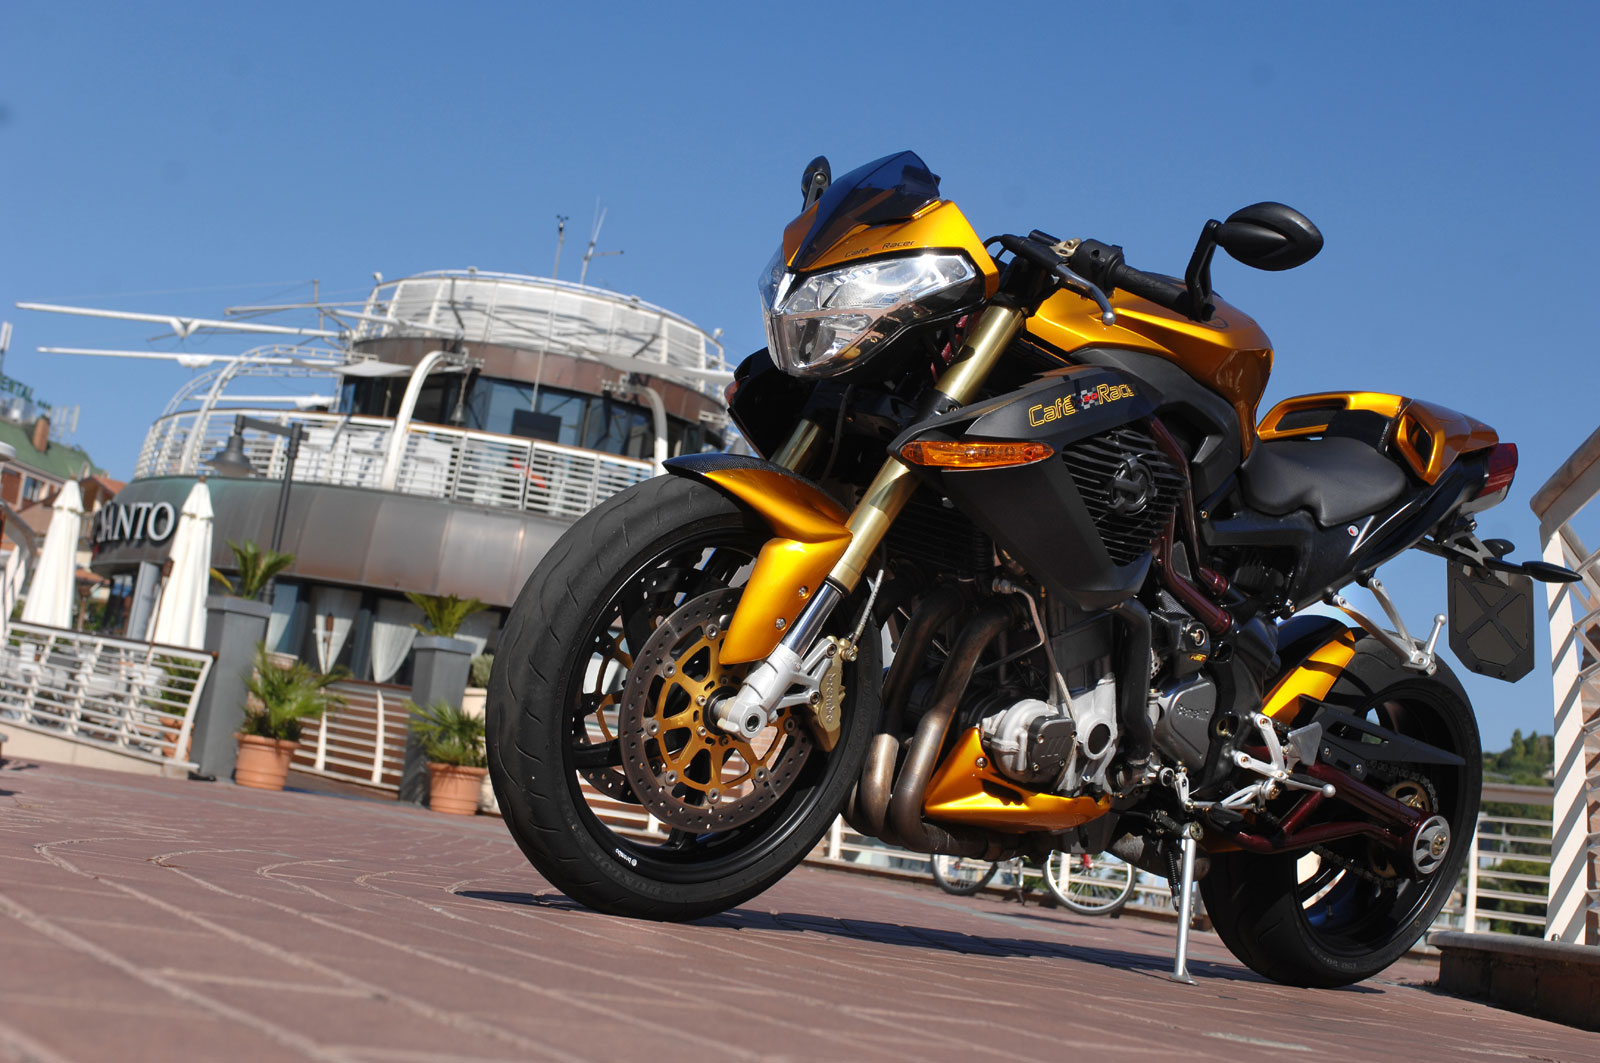 Benelli TnT Cafe Racer 2008 pics #1500